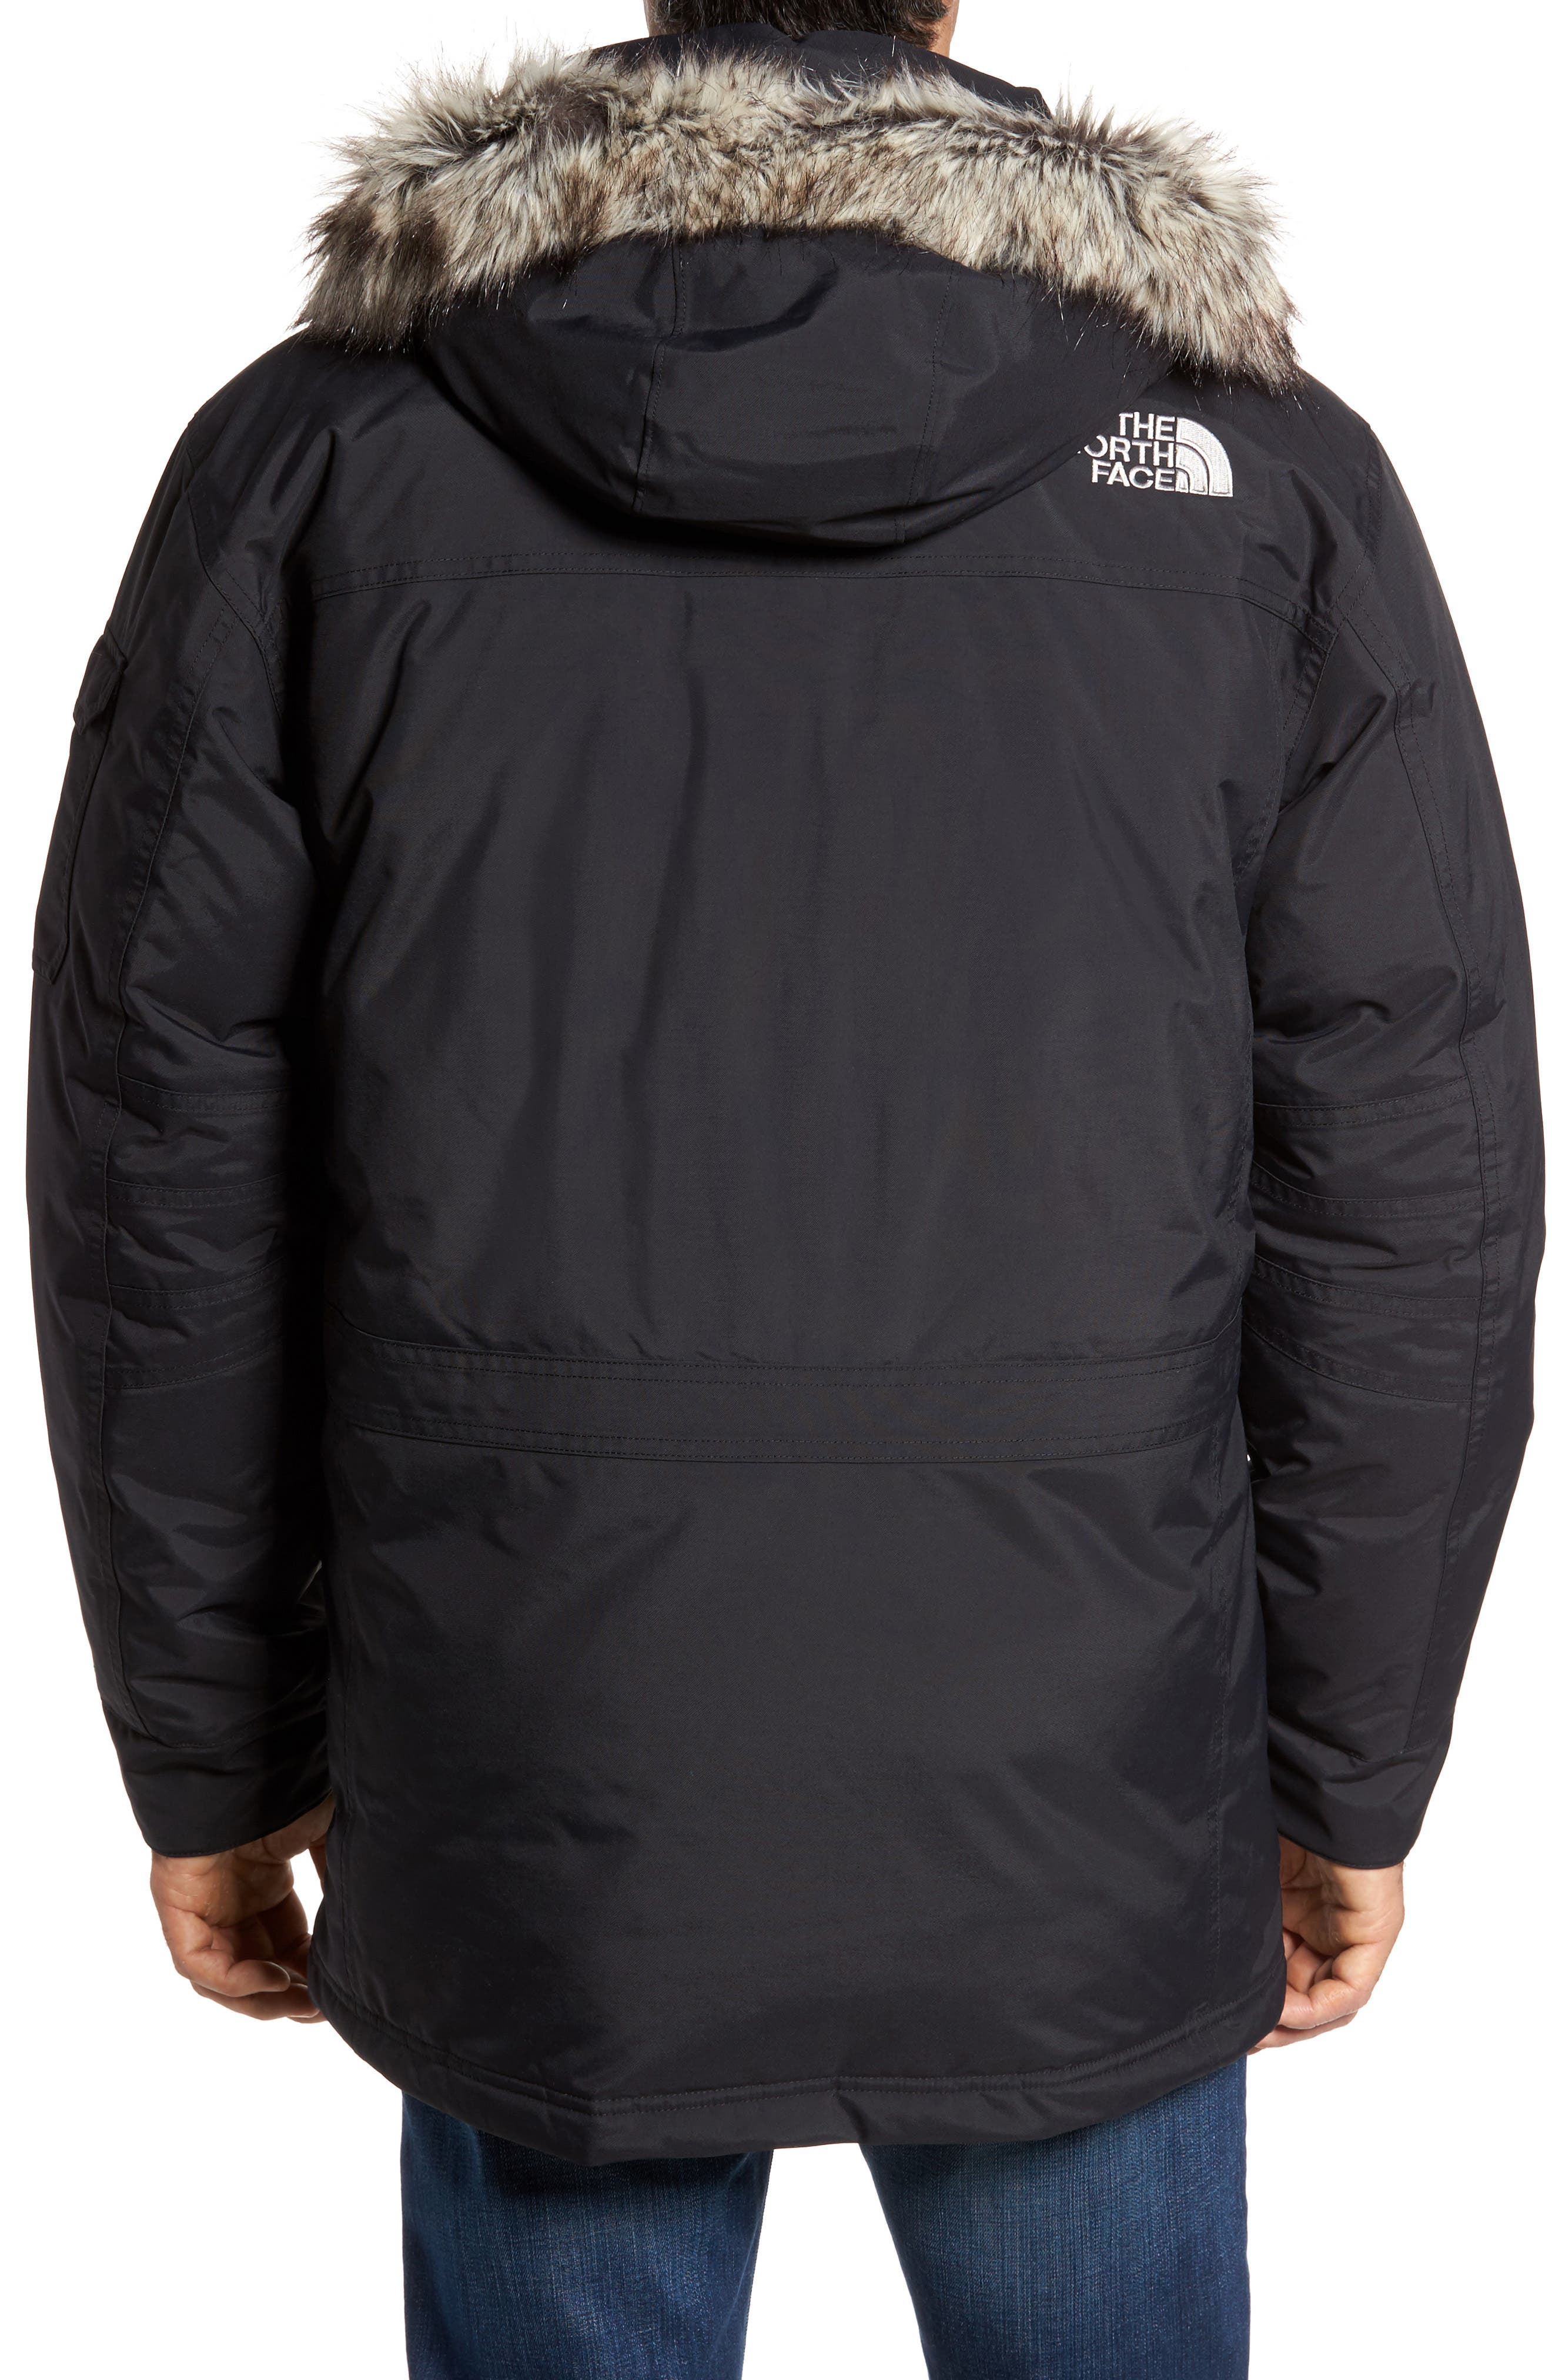 THE NORTH FACE,                             McMurdo III Waterproof Parka,                             Alternate thumbnail 2, color,                             001